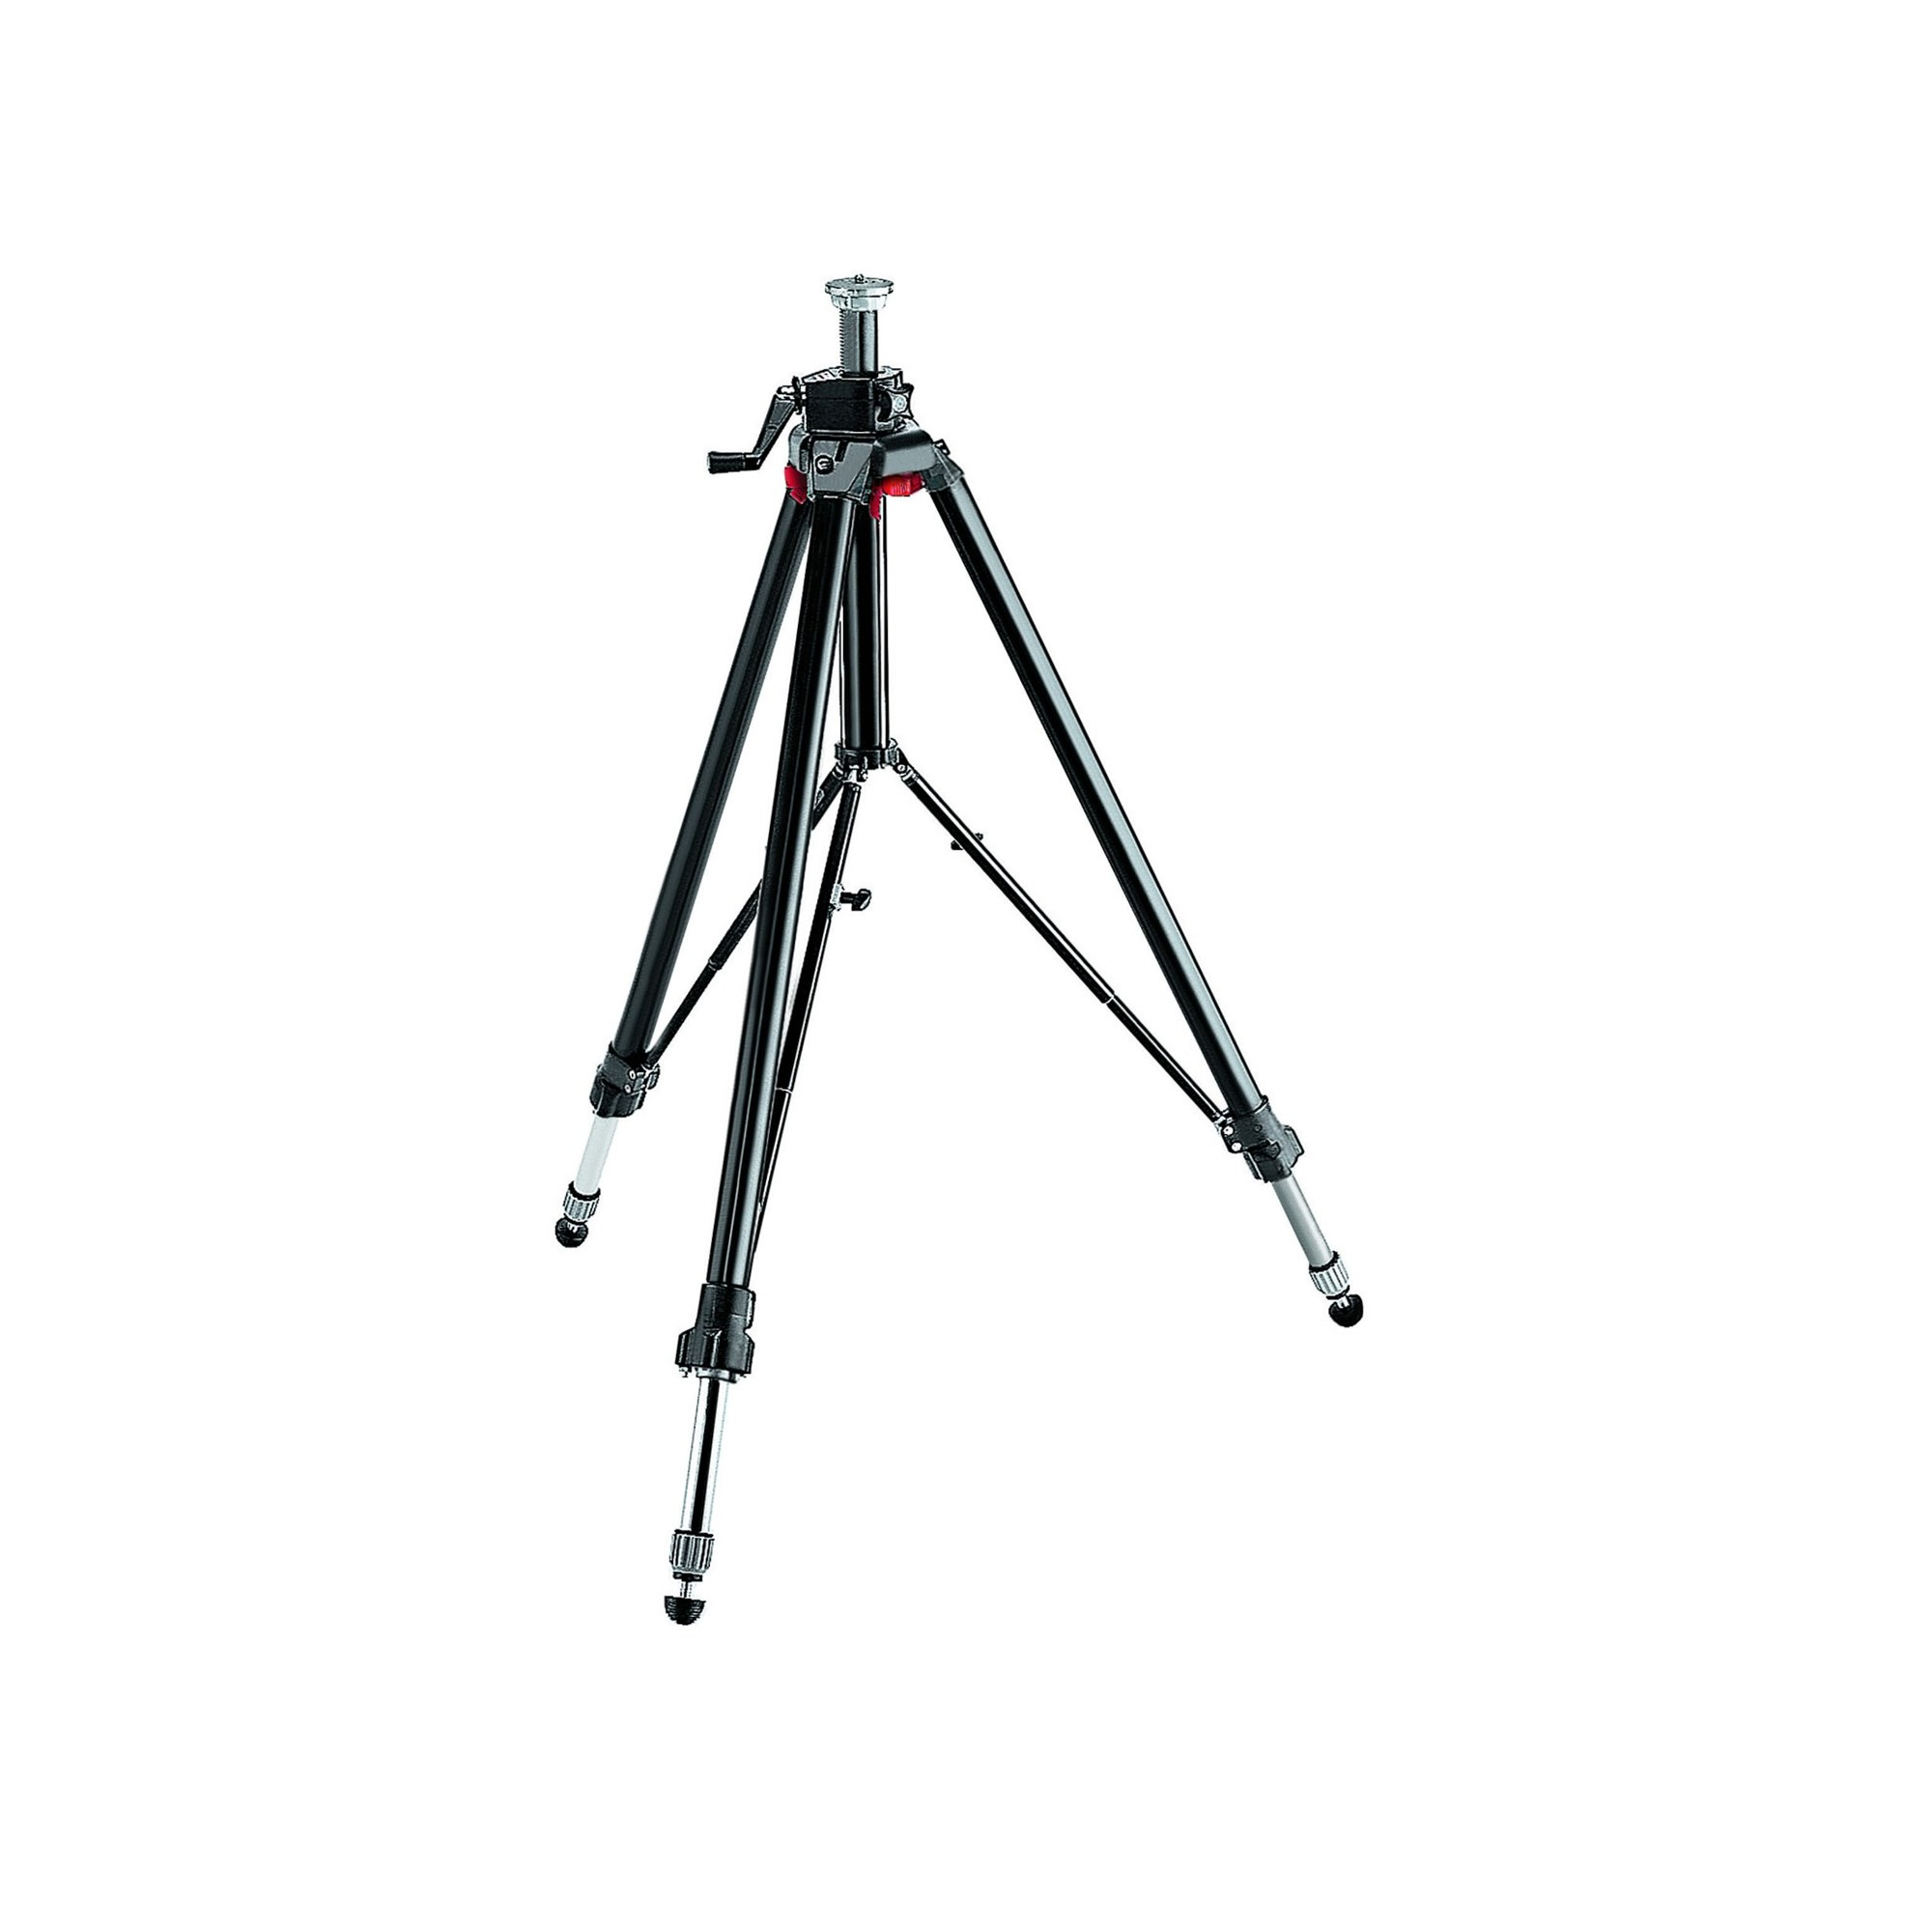 Manfrotto Camera tripod 058B available to rent / verhuur / location at 50.8 Studio • Avenger, Belgïe, Belgique, Belgium, Grip, Huur, Location, Louer, Photo, Rent, Rental, Stand, Studio, Verhuur, Video